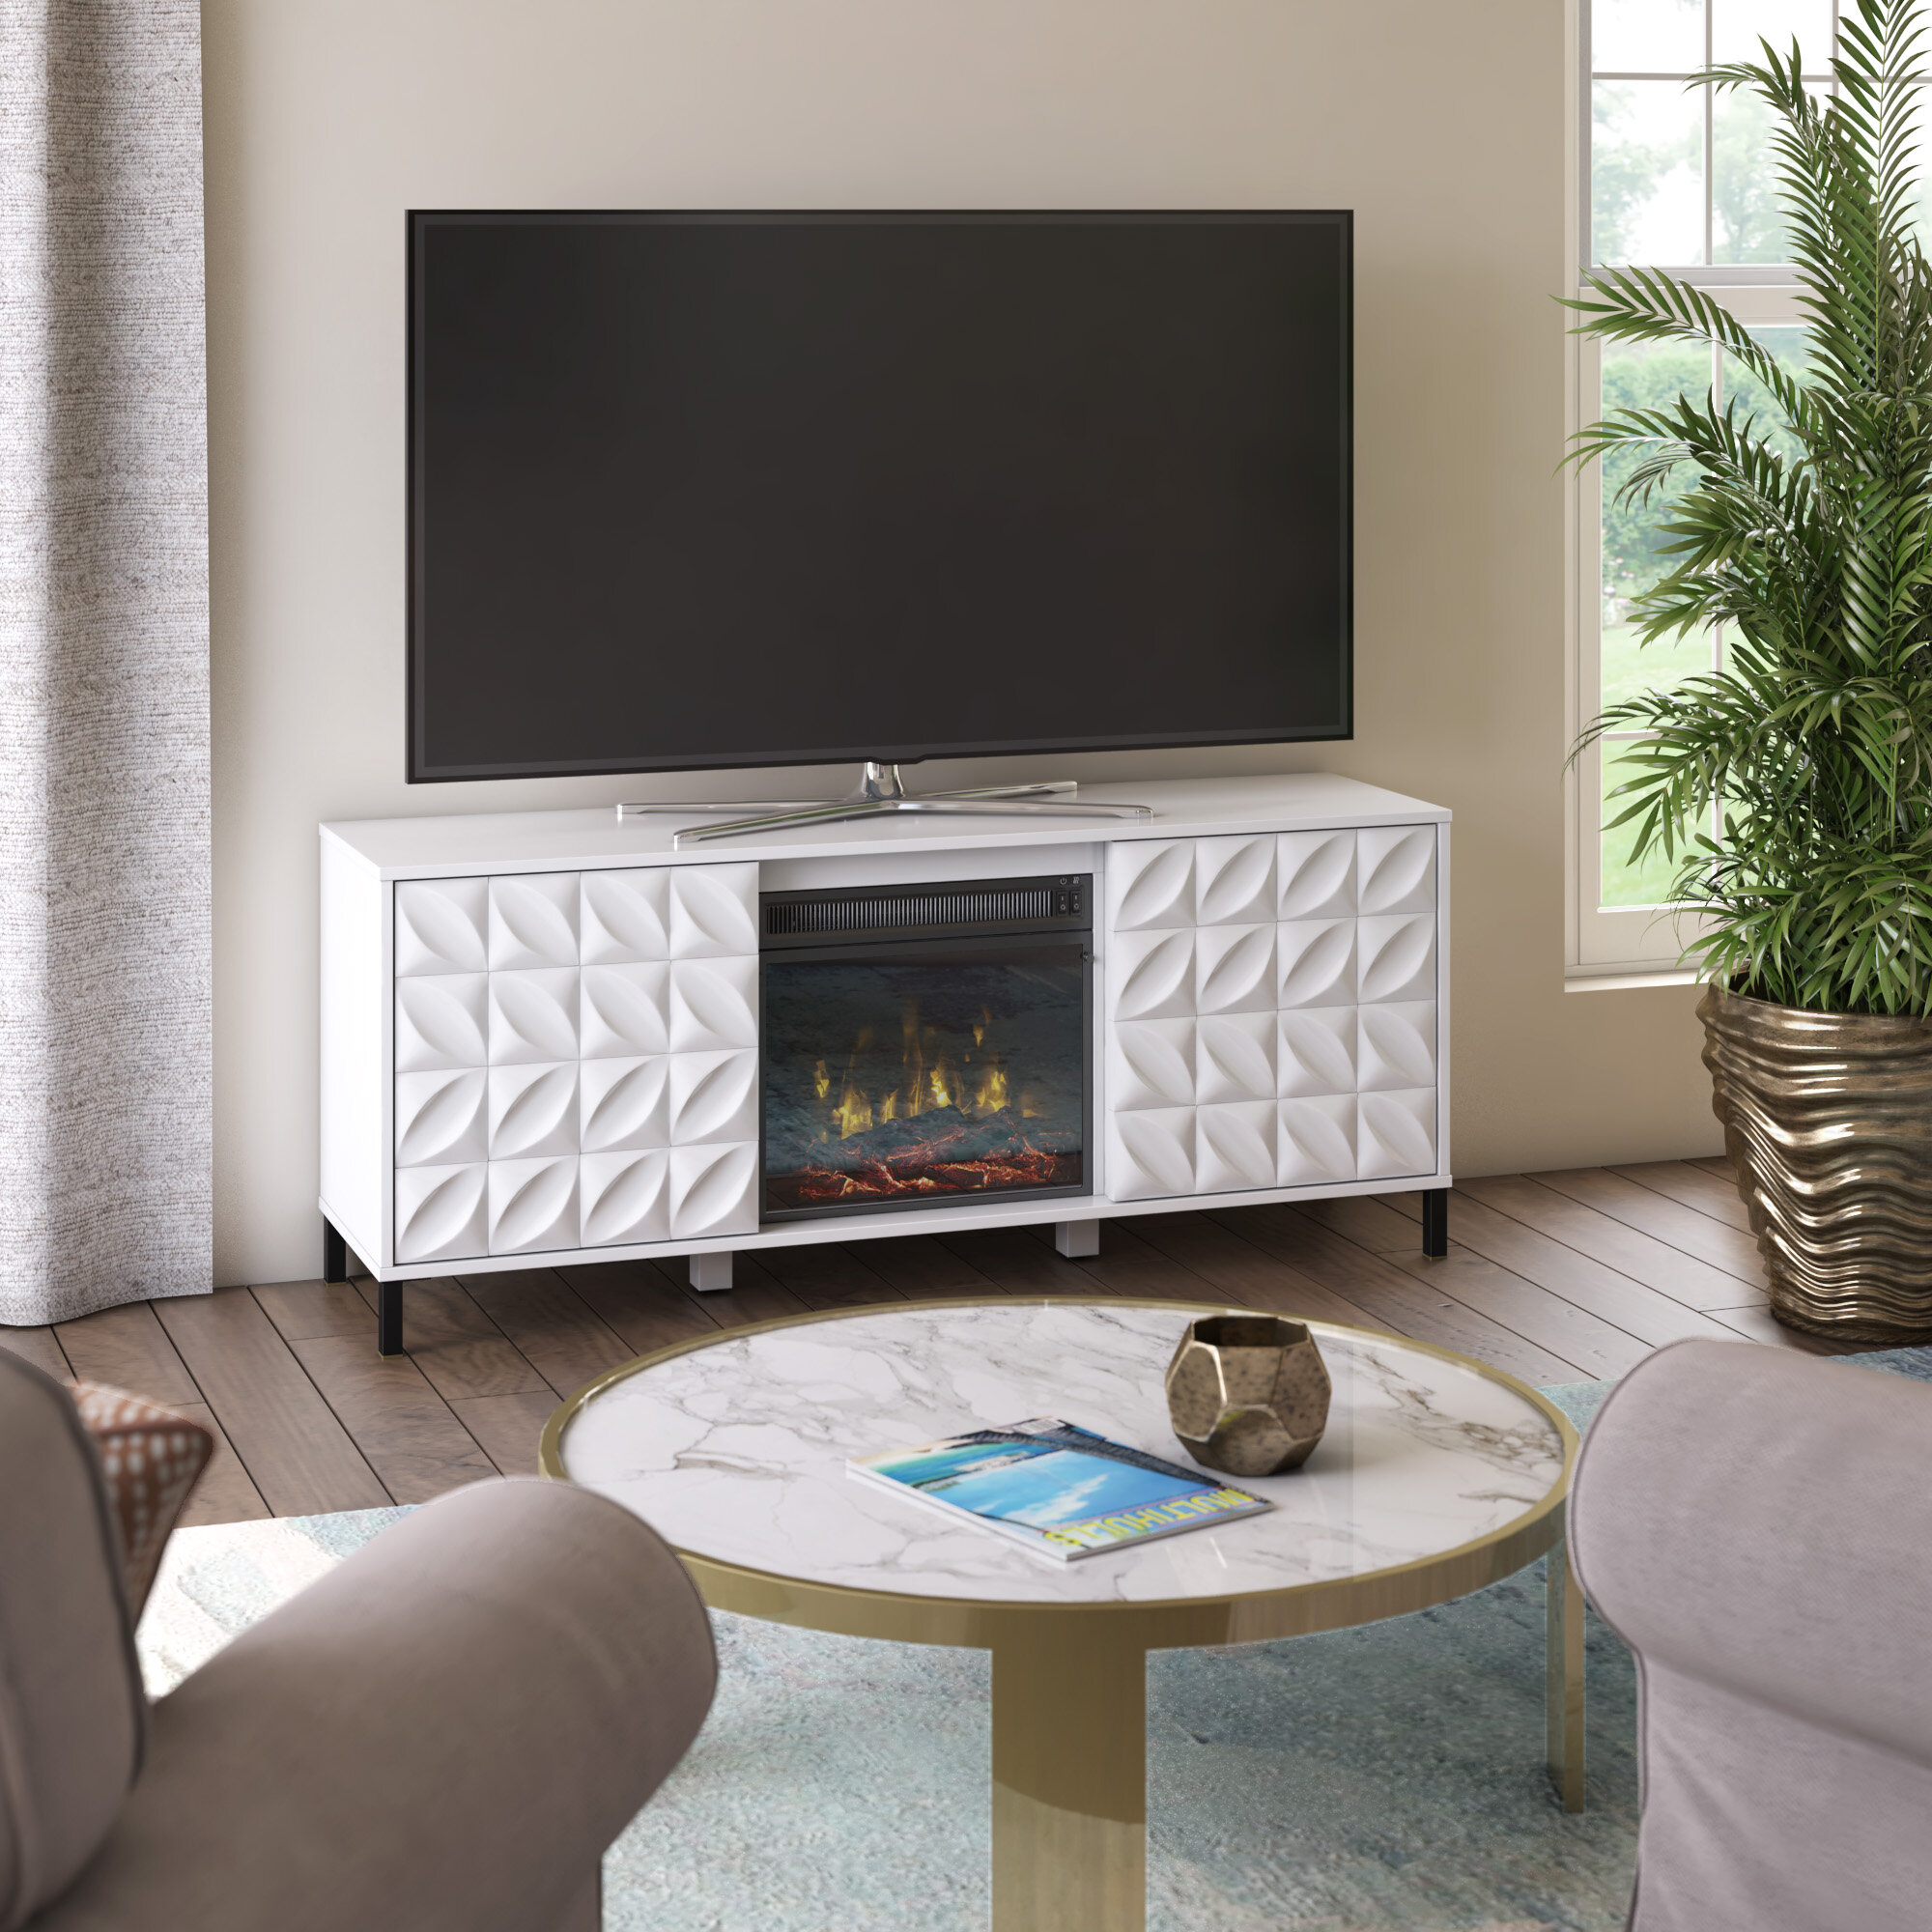 Ebern Designs Mitchellville Tv Stand For Tvs Up To 60 With Electric Fireplace Included Reviews